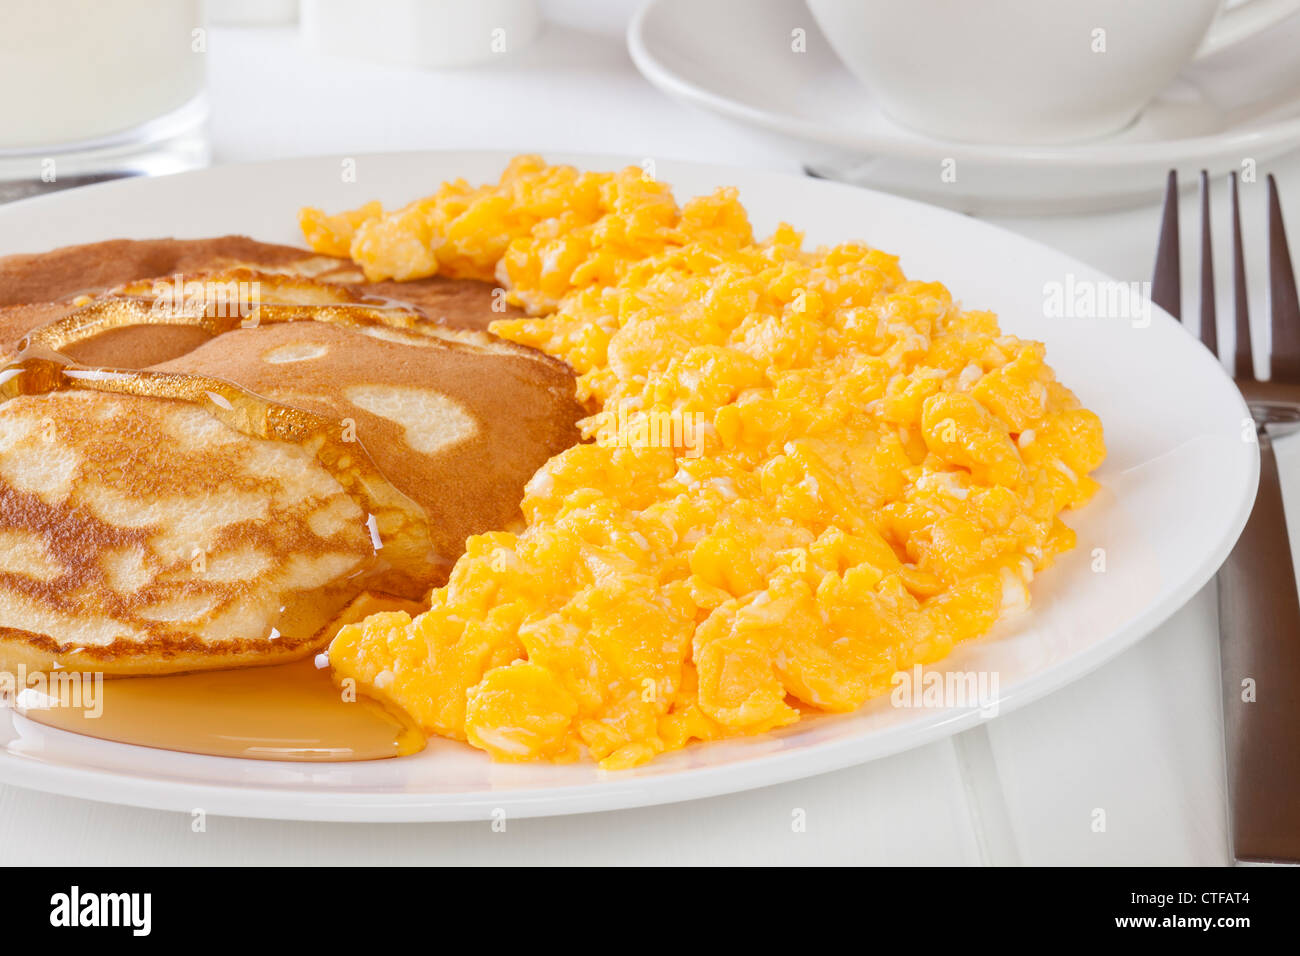 Homemade hotcakes with maple syrup, served with scrambled egg. - Stock Image